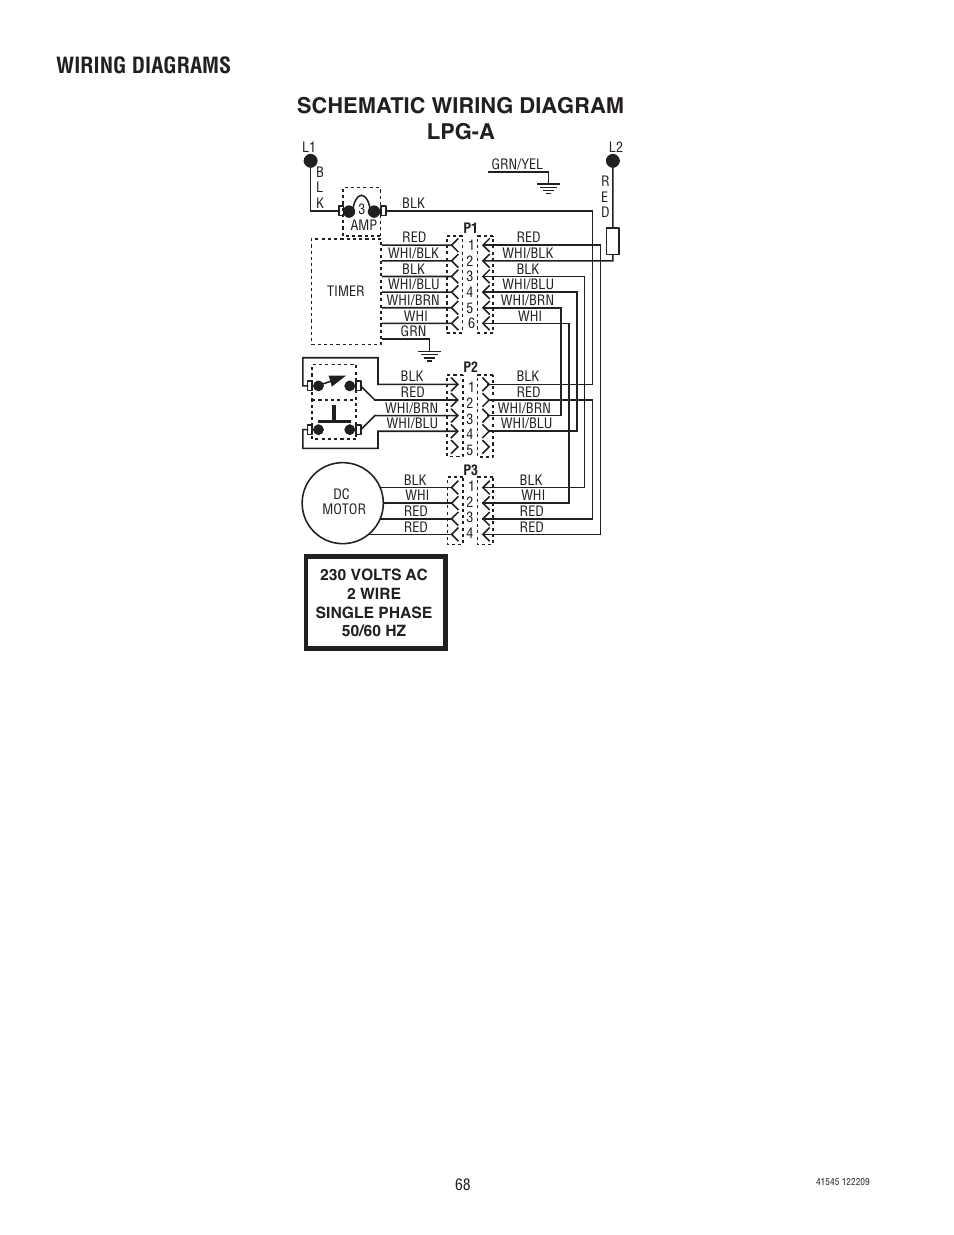 hight resolution of schematic wiring diagram lpg a wiring diagrams bunn g9 2t dbc user